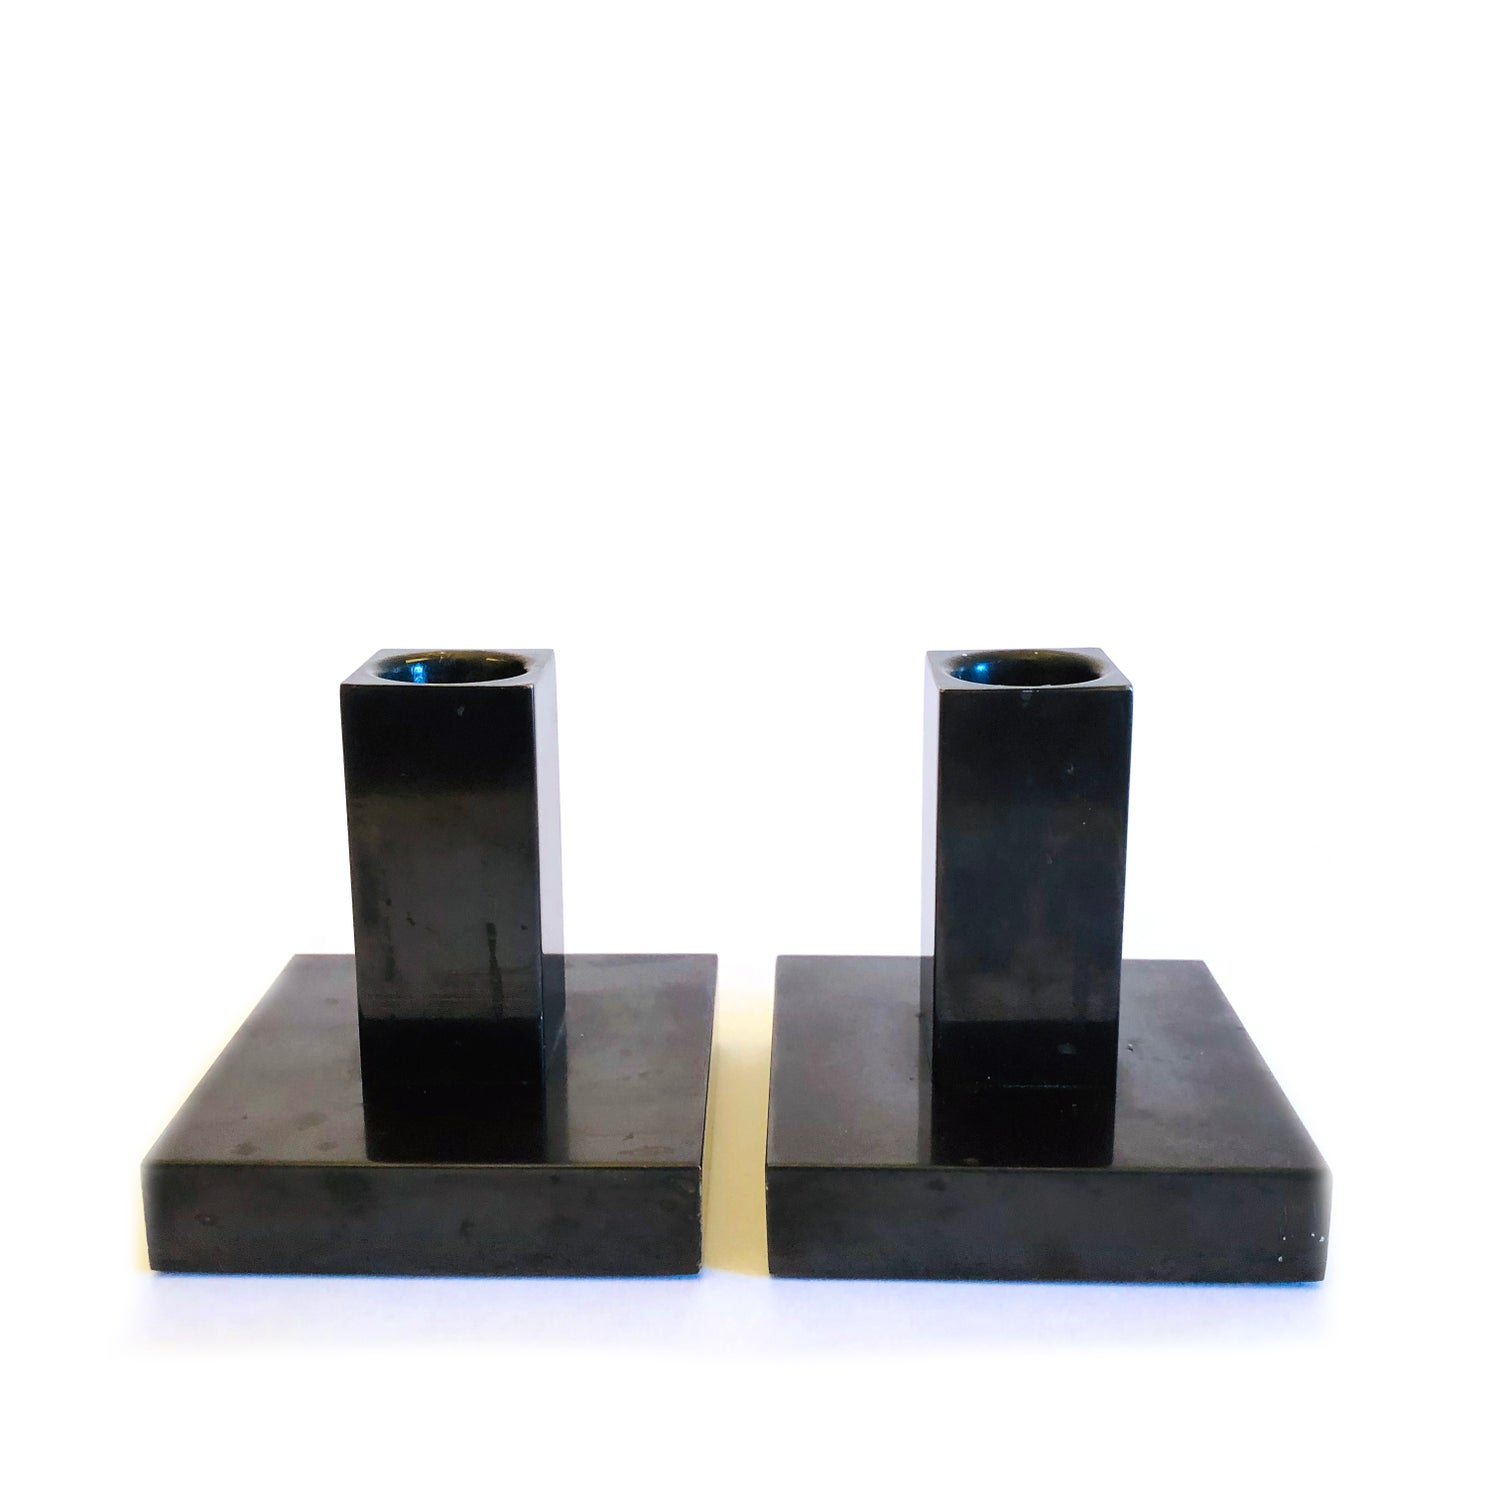 Image of Swid Powell Candlesticks by Calvin Klein